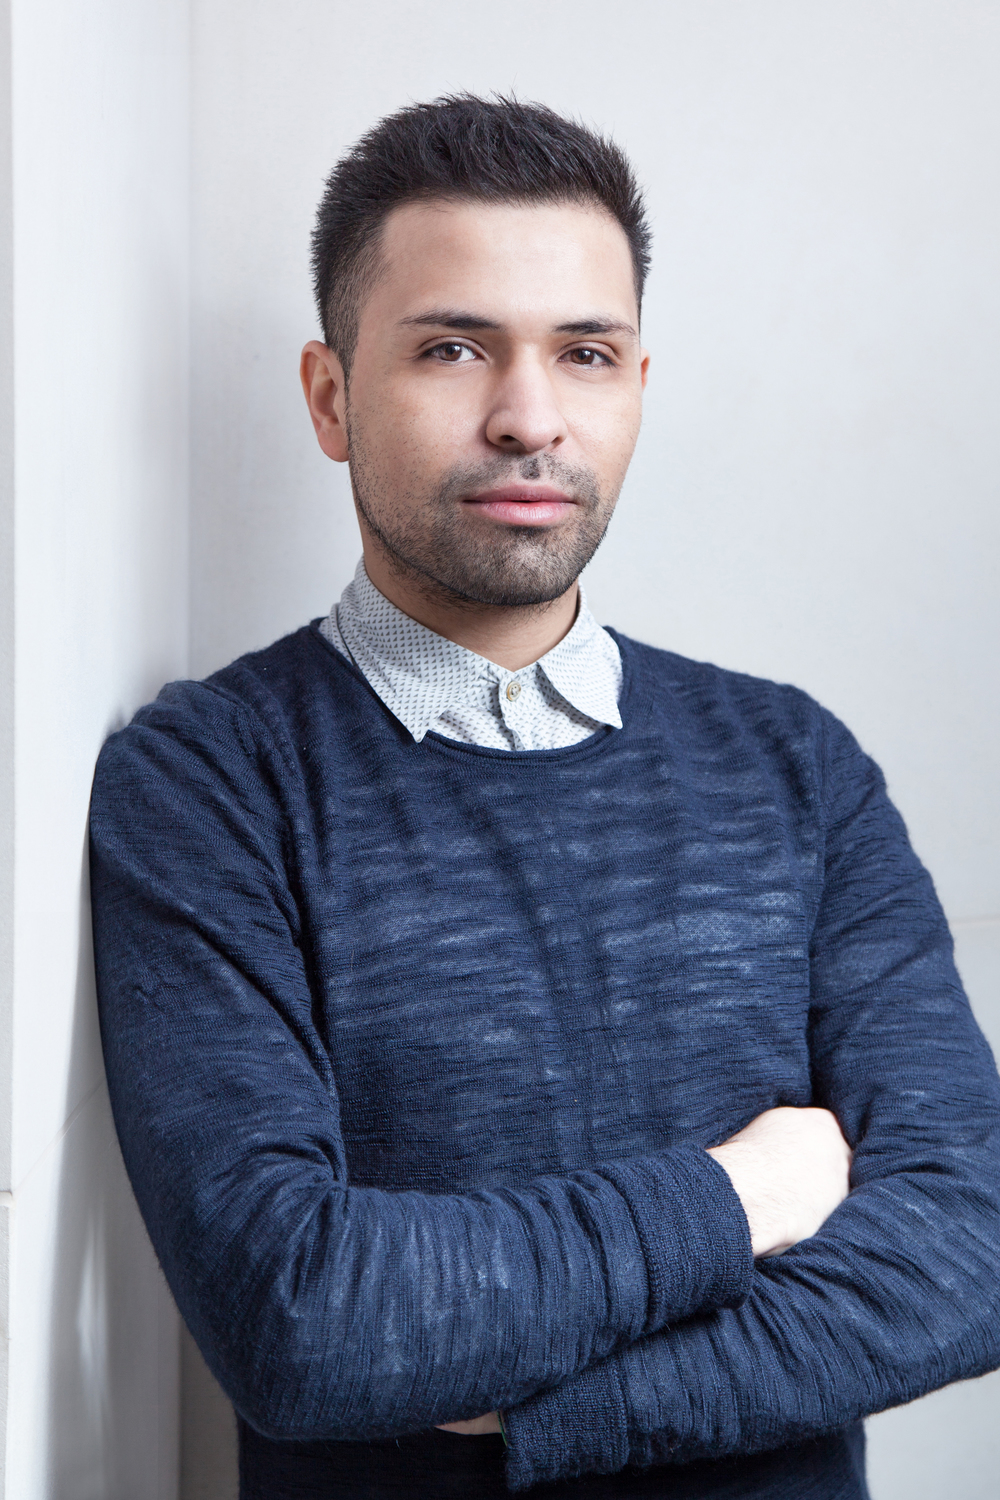 Ricardo - salon assistant at Hiro Miyoshi